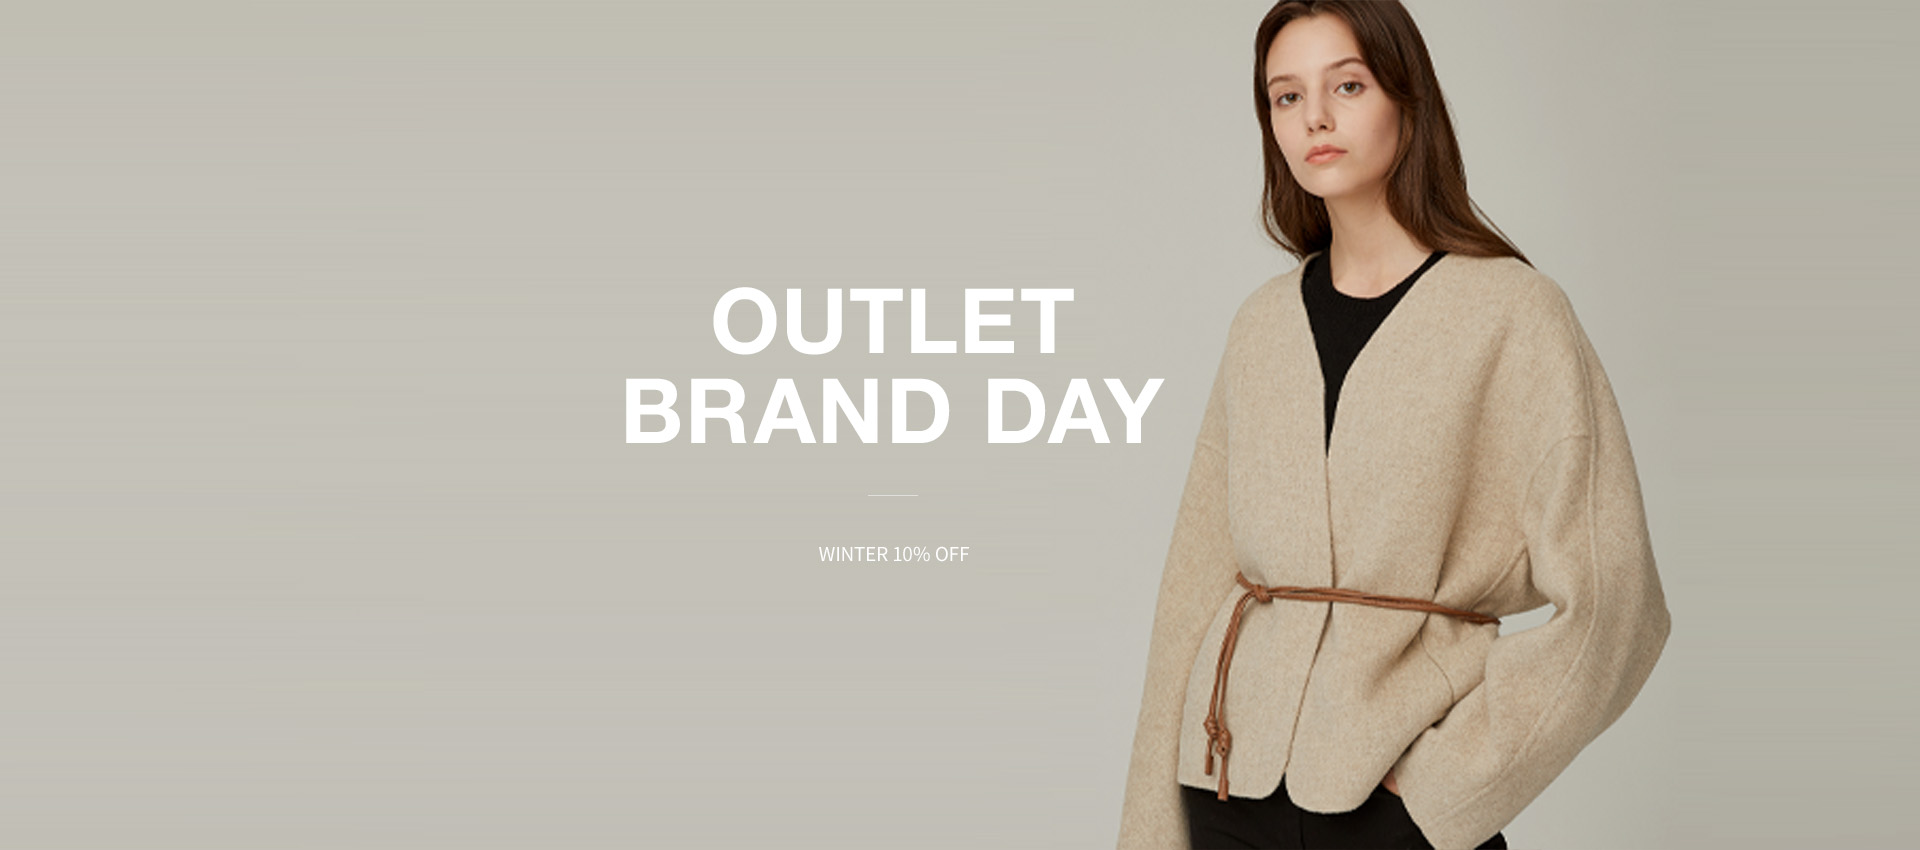 OUTLET BRAND DAY